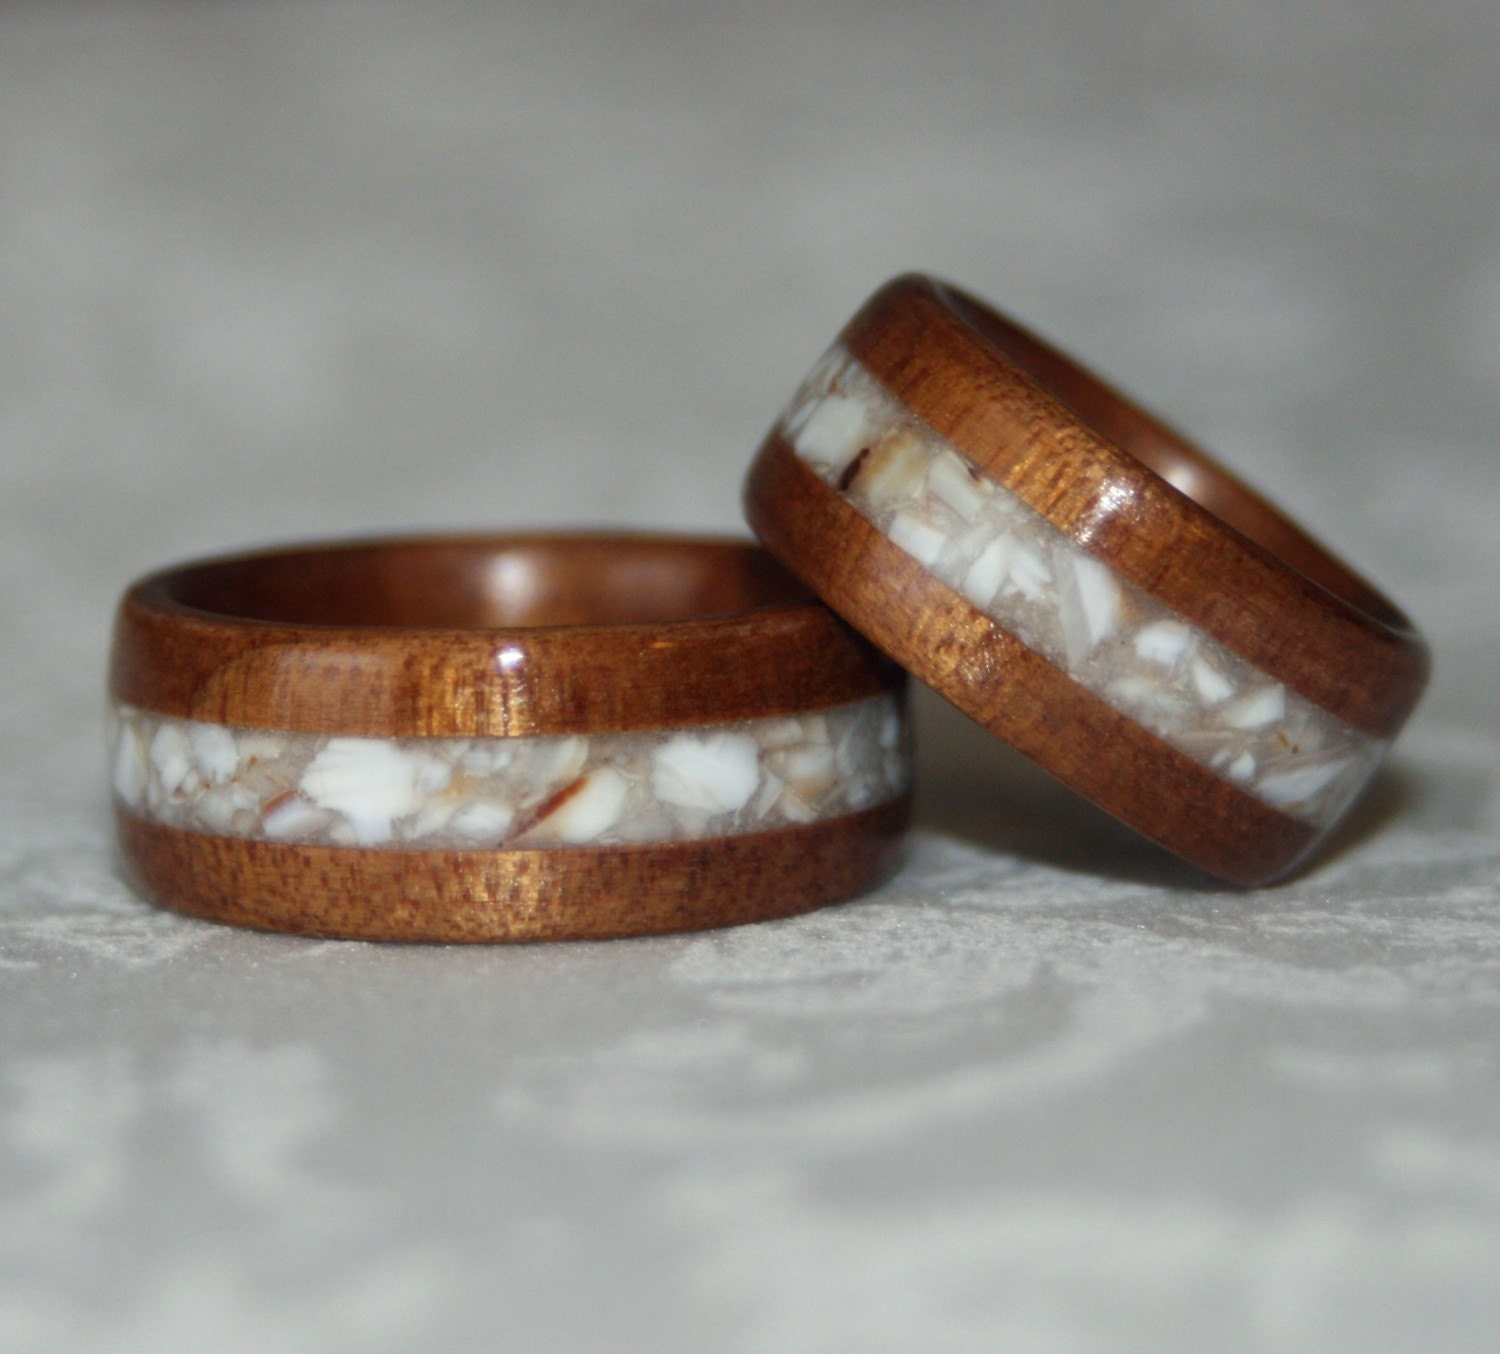 Crushed Gemstone For Inlays : Set of custom wood rings with crushed stone inlay by